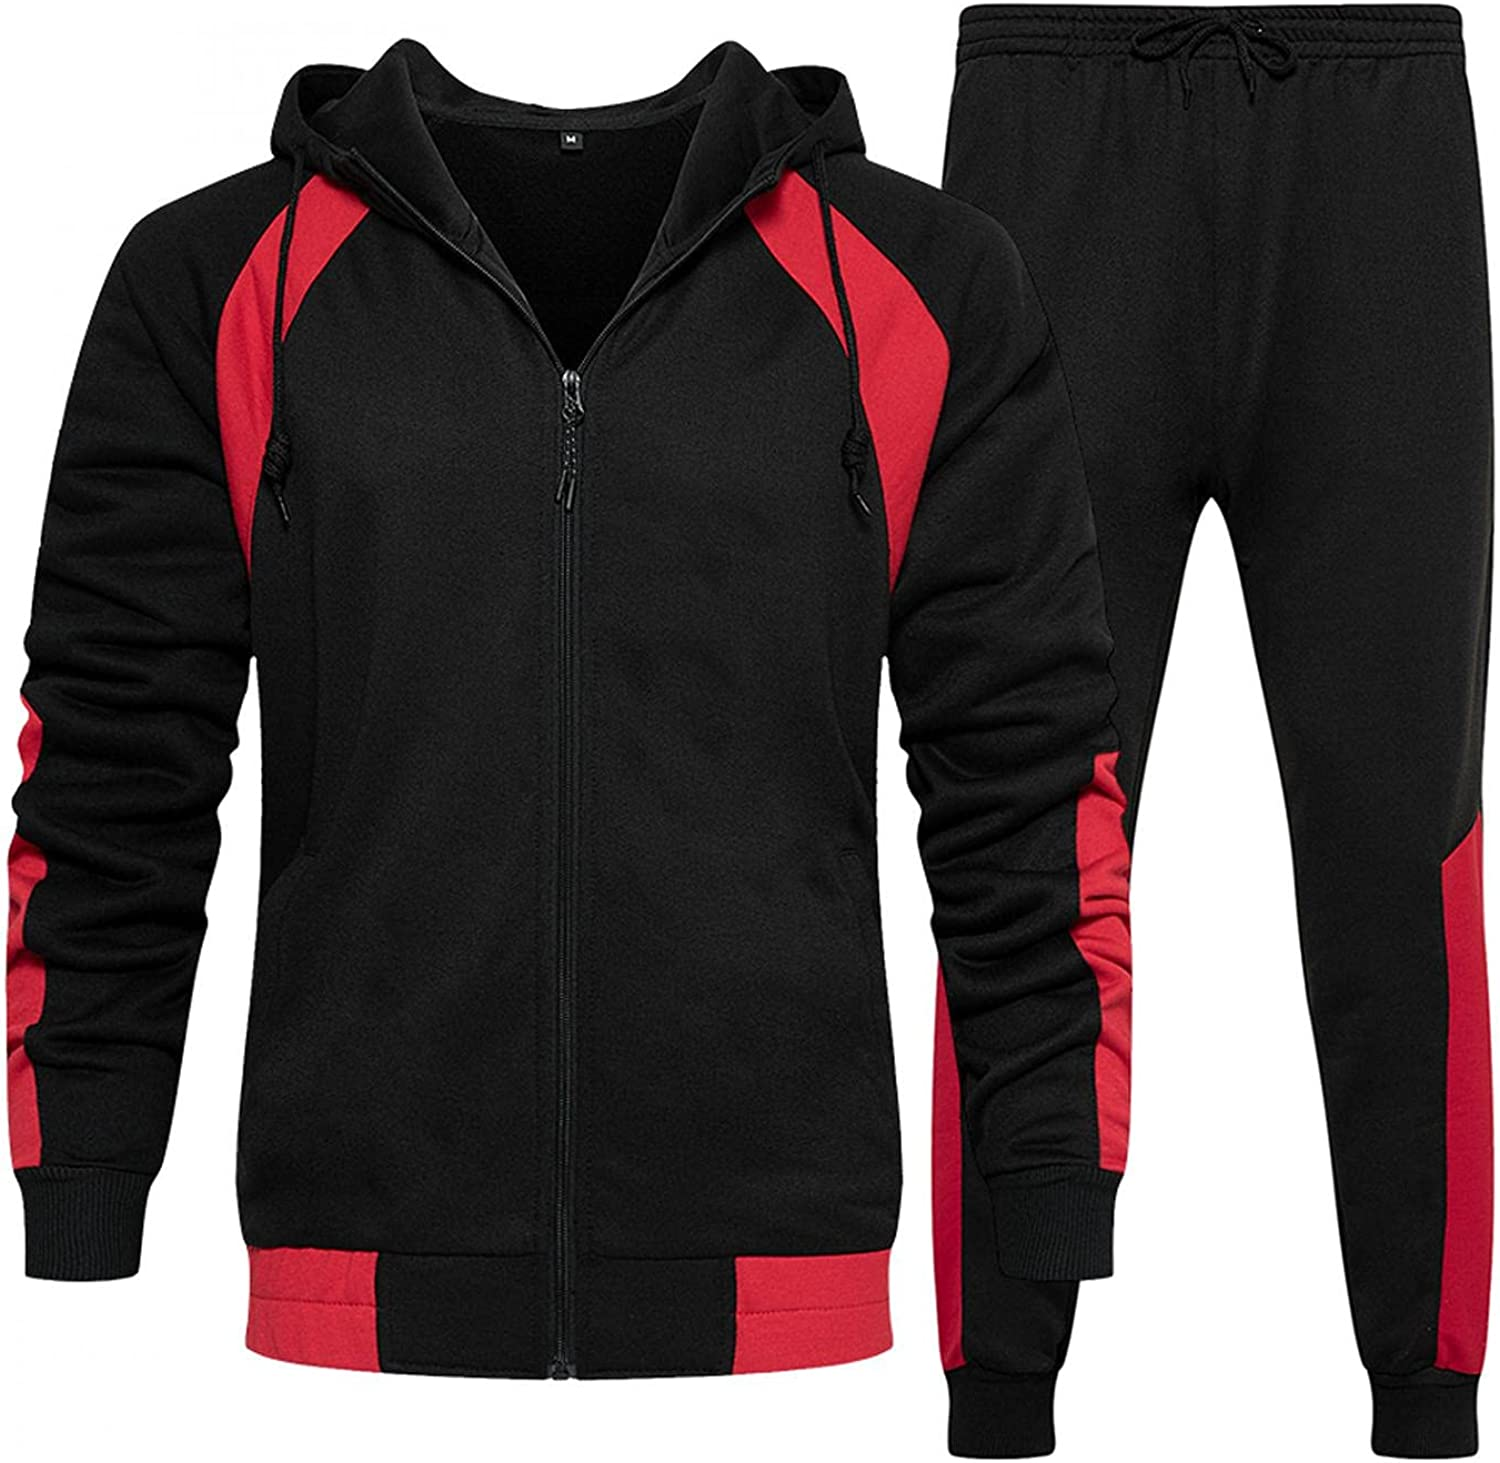 LEIYAN Mens 2 Piece Outfits Sets Athletic Long Sleeve Colorblock Hooded Sweatshirt Running Pants Casual Jogger Tracksuit